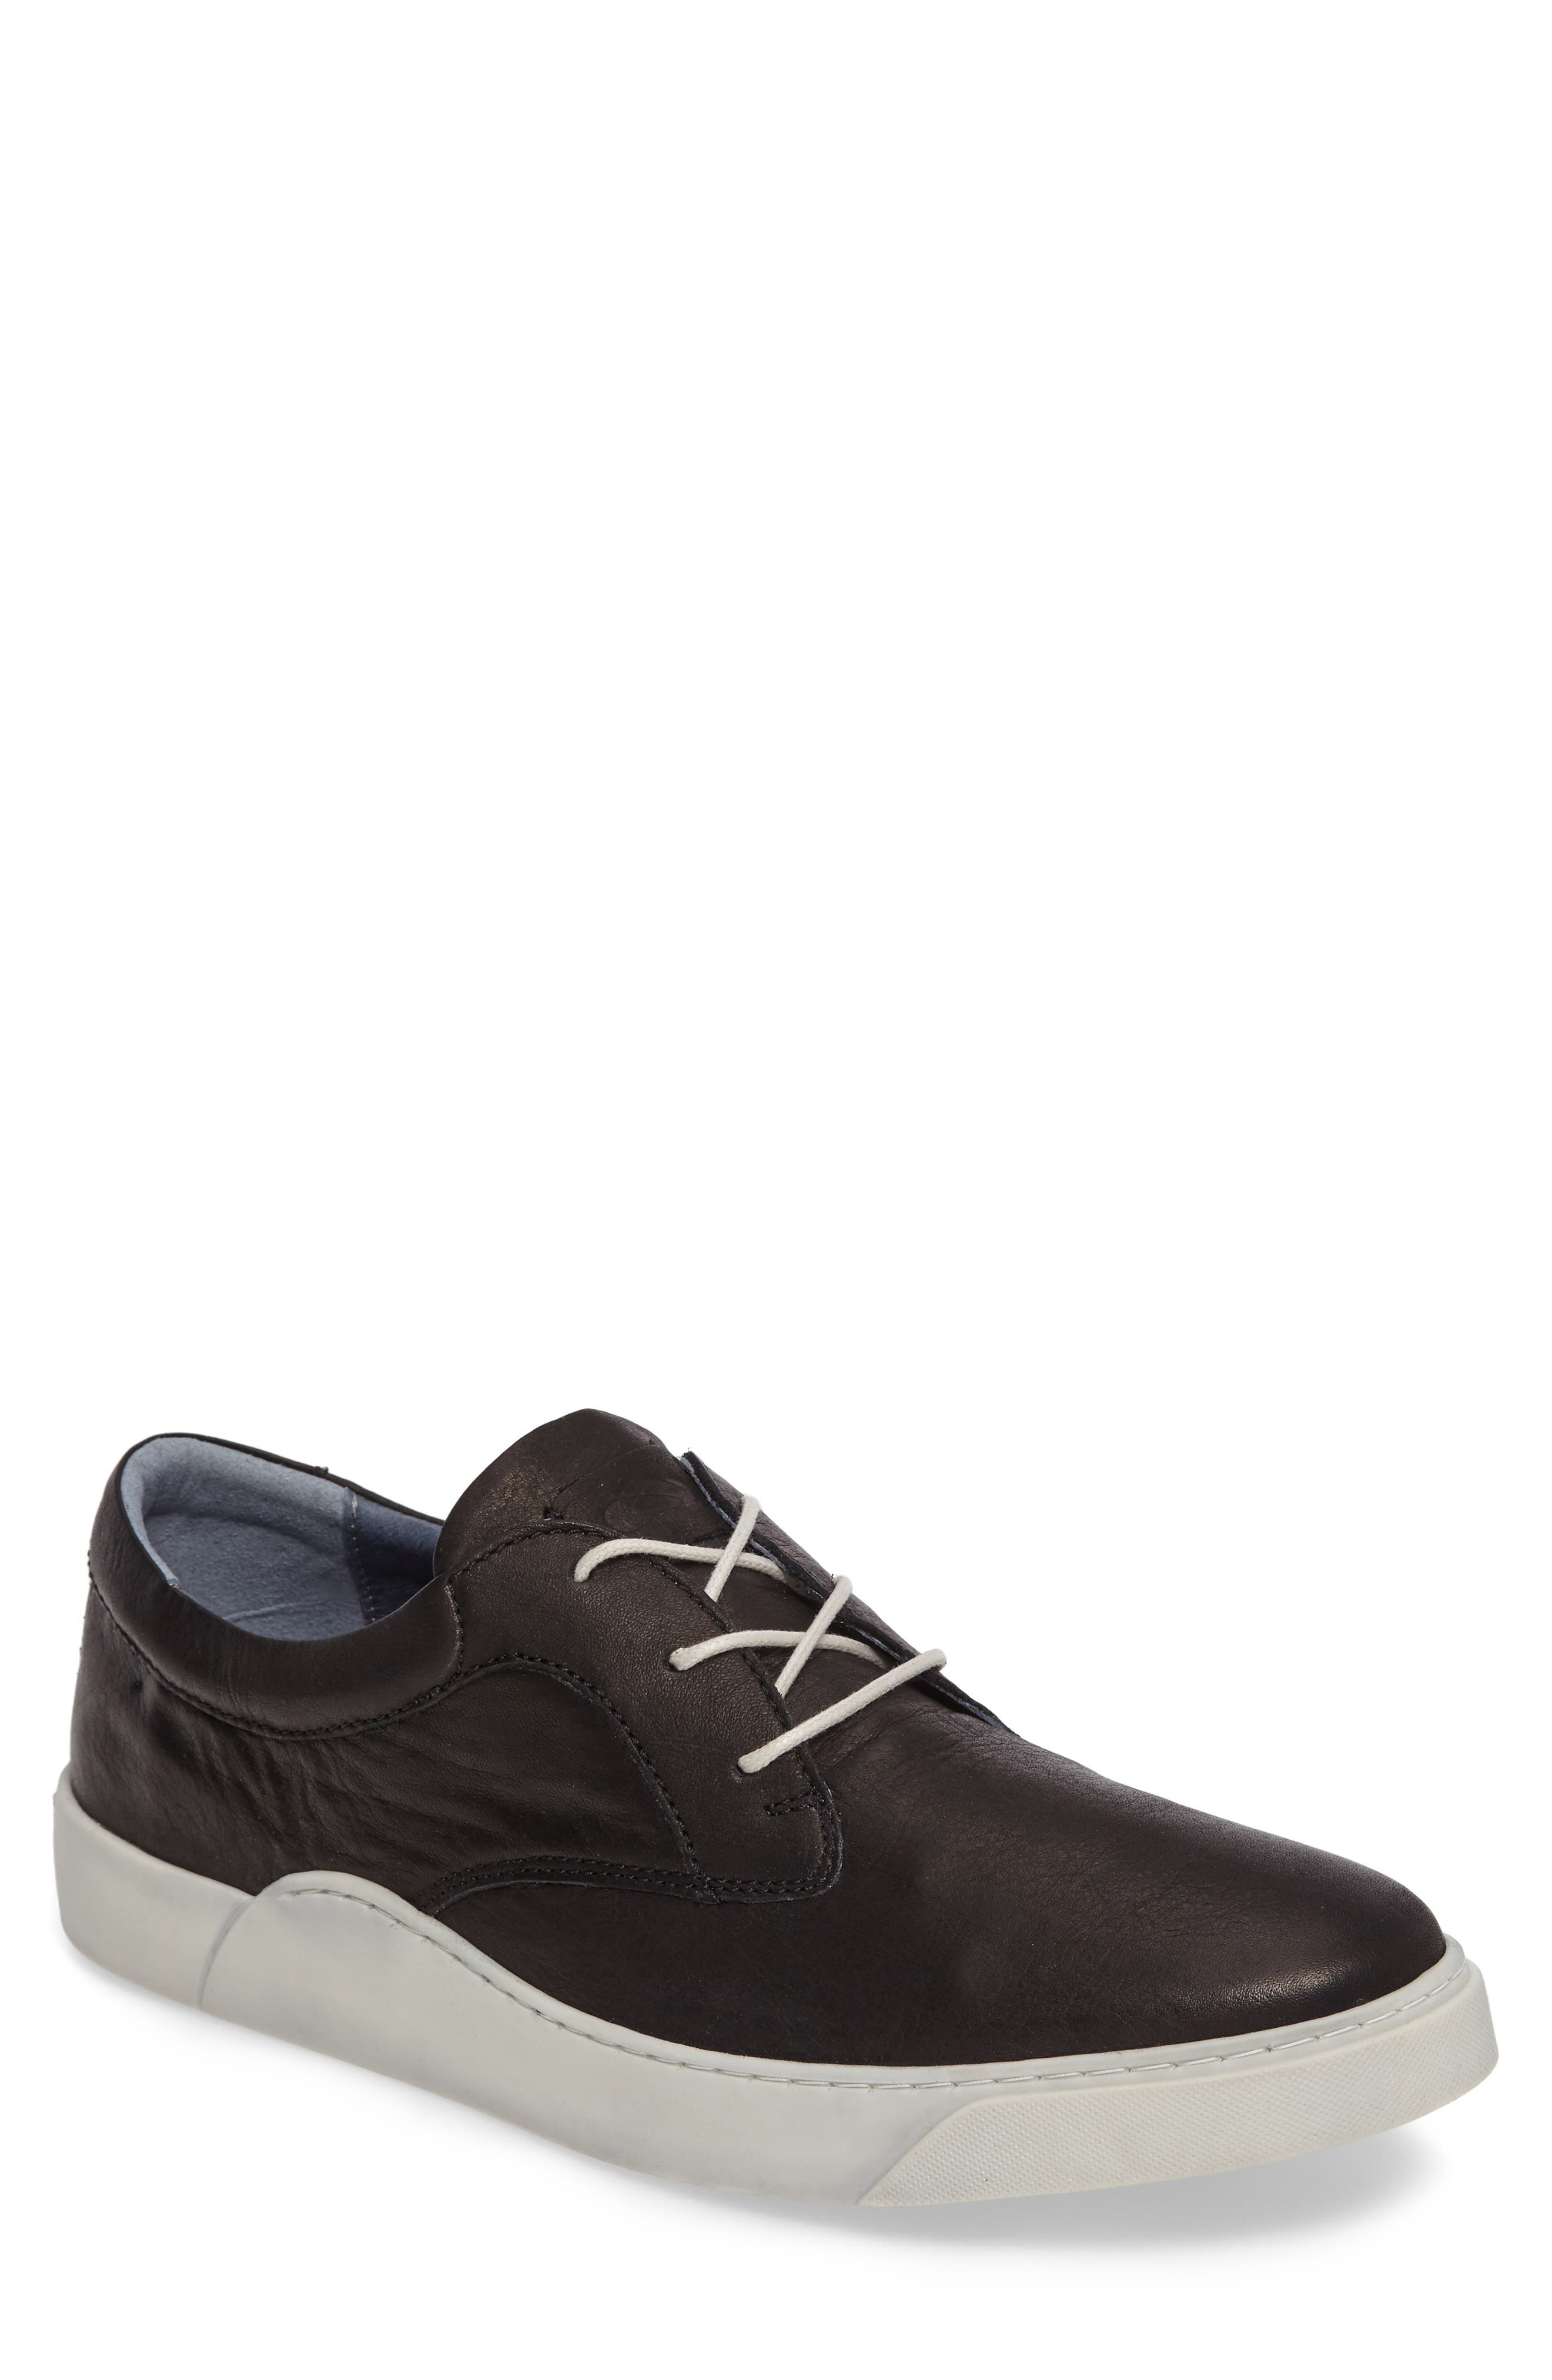 Ithan Sneaker,                         Main,                         color, 001